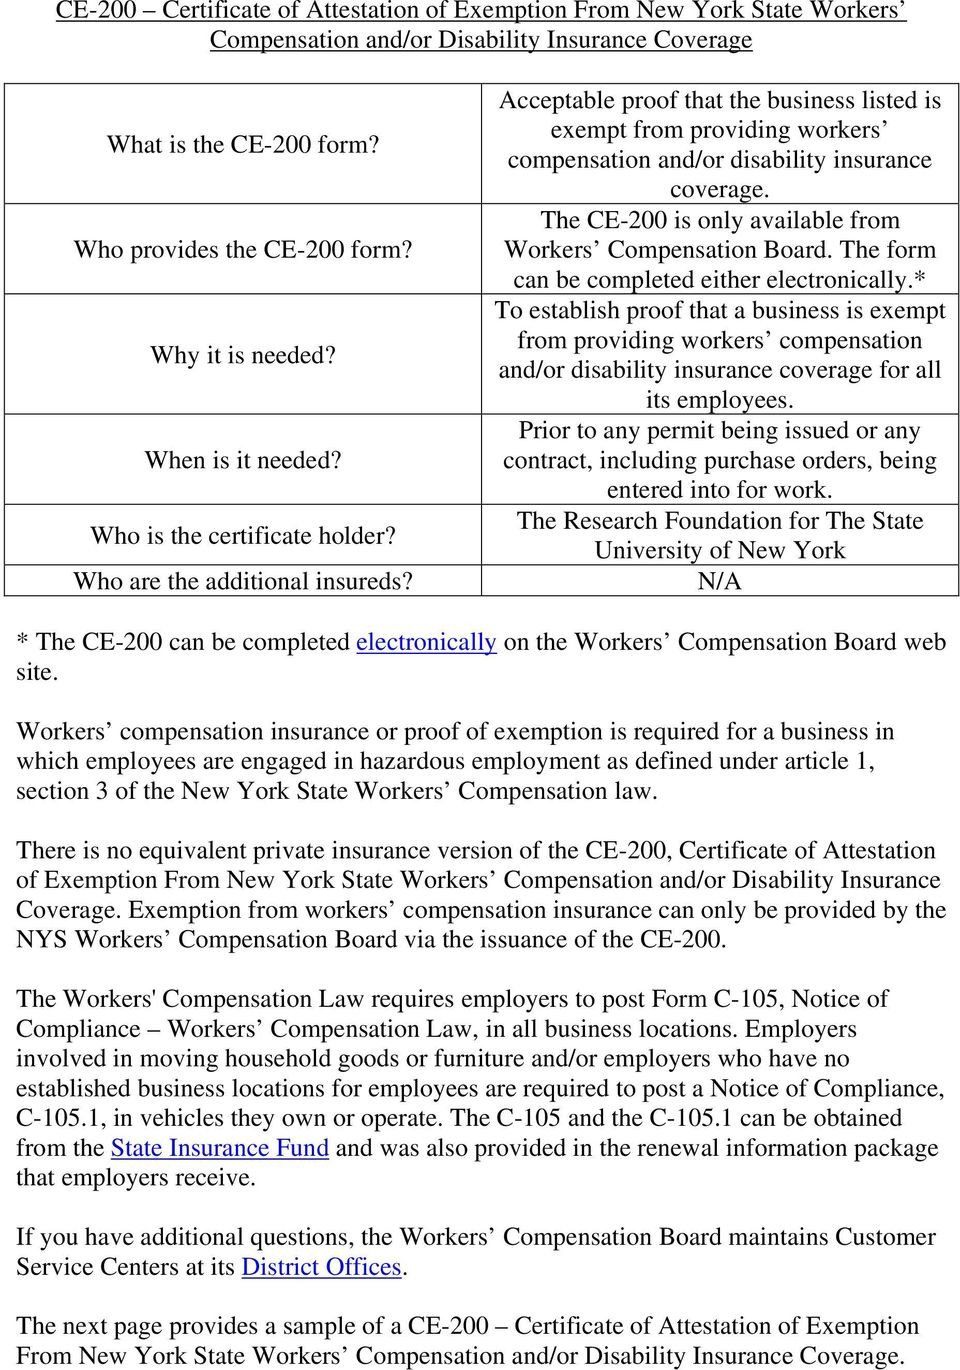 Ce 200 form New York Ce 200 Certificate Of attestation Of Exemption From New